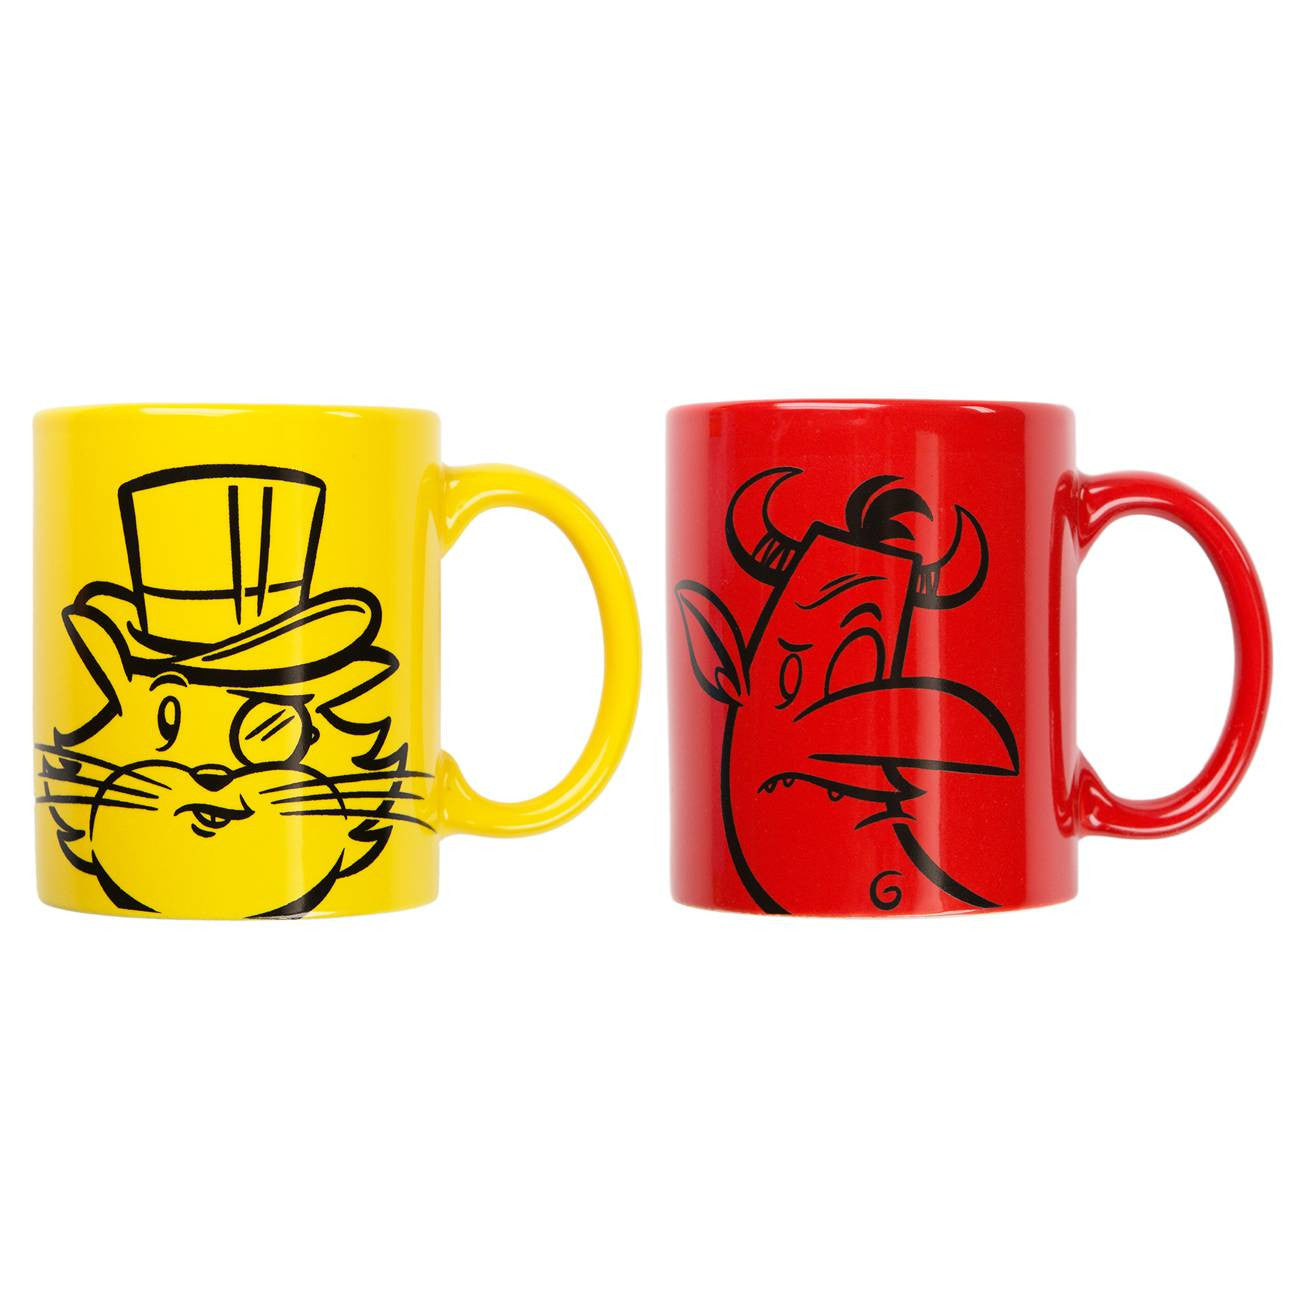 Twisp & Catsby Mug Set